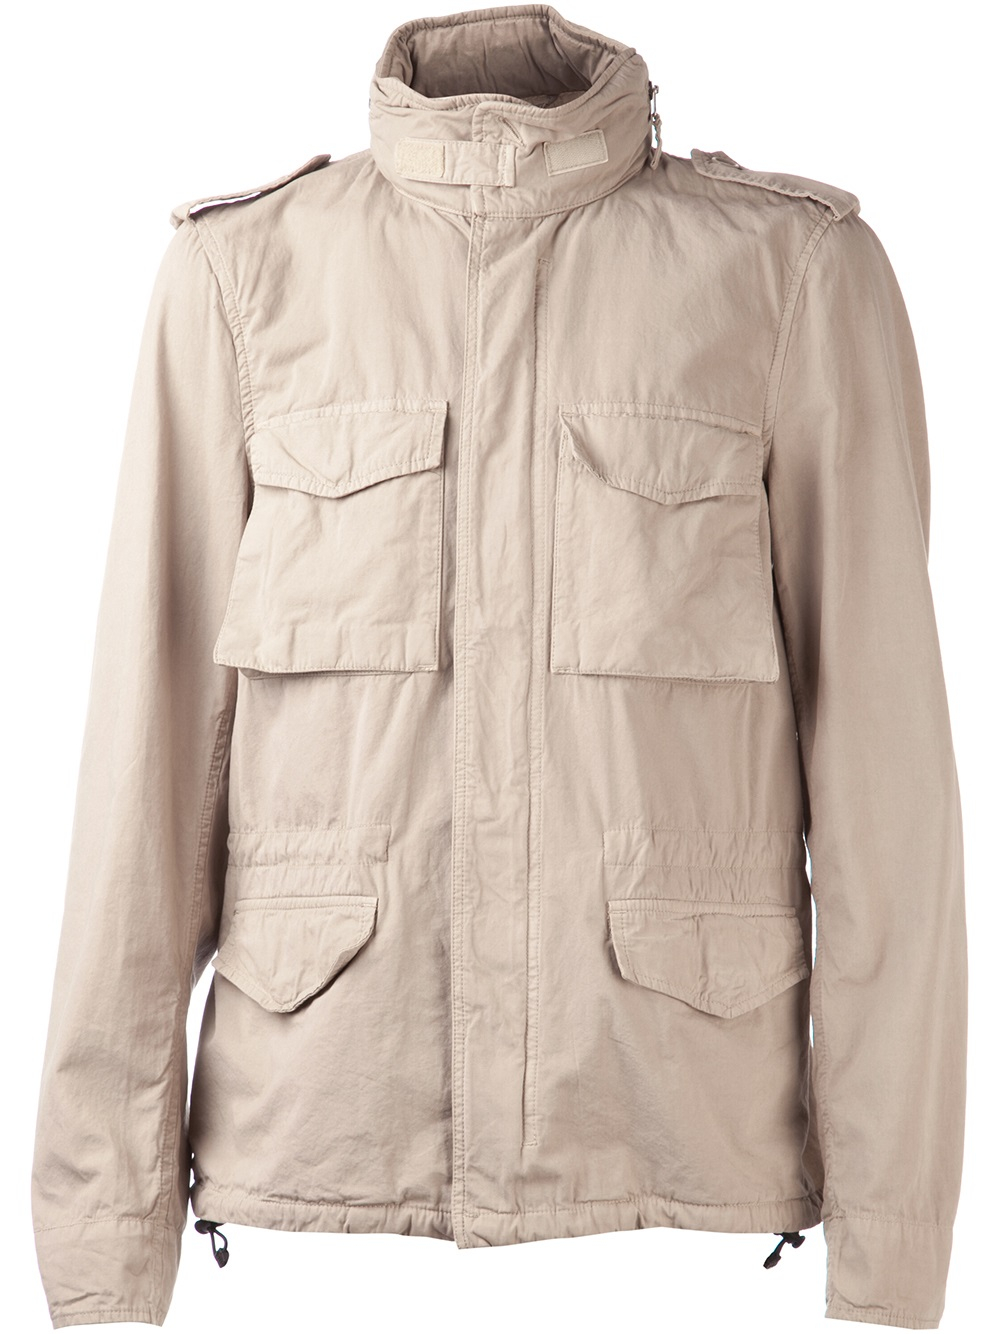 Lyst - Aspesi Field Jacket In Natural For Men-3520